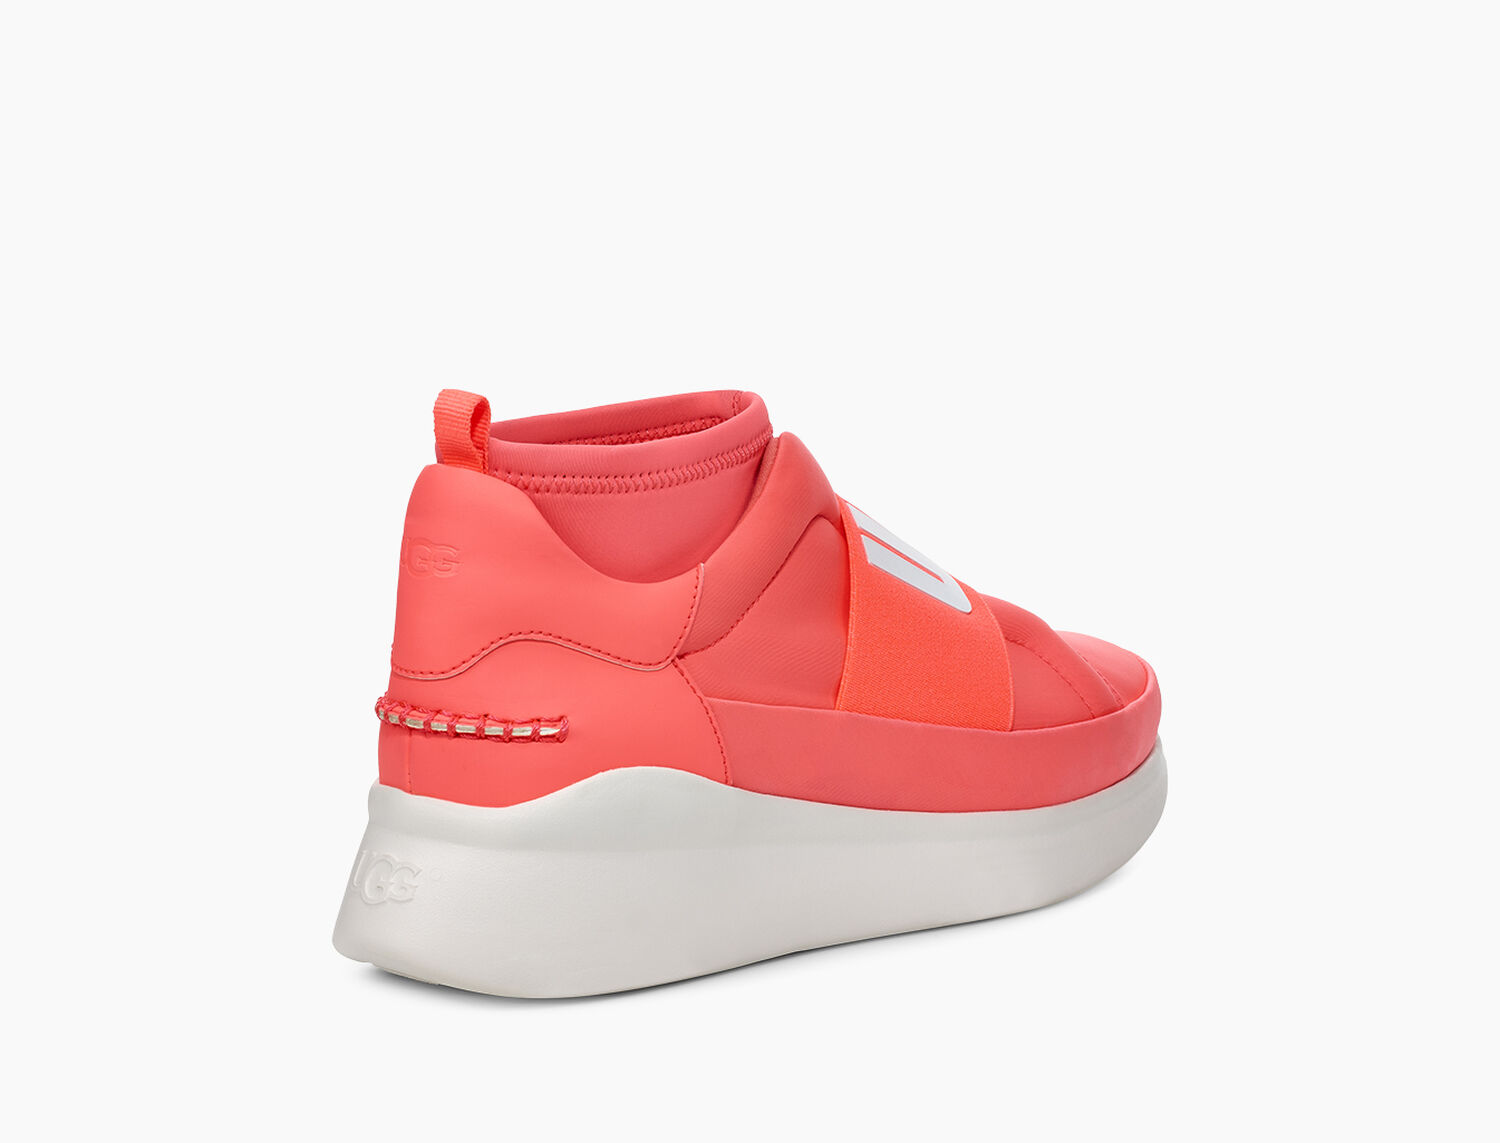 a0c7f93a6f3 Women's Share this product Neutra Sneaker